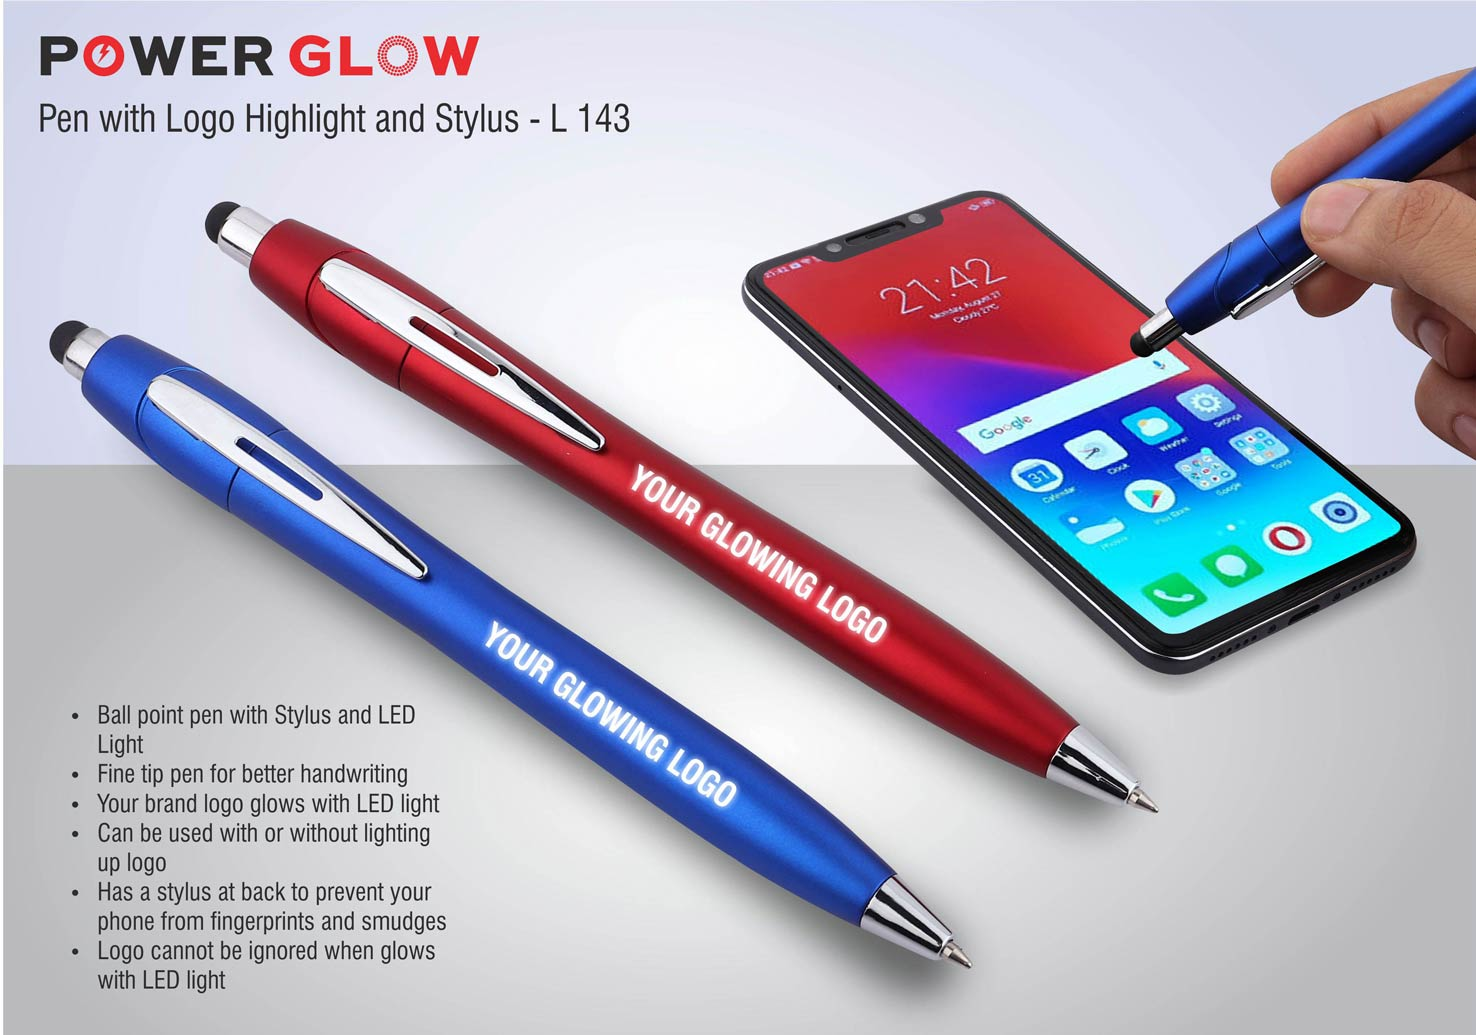 L143 - PowerGlow pen with logo highlight and stylus